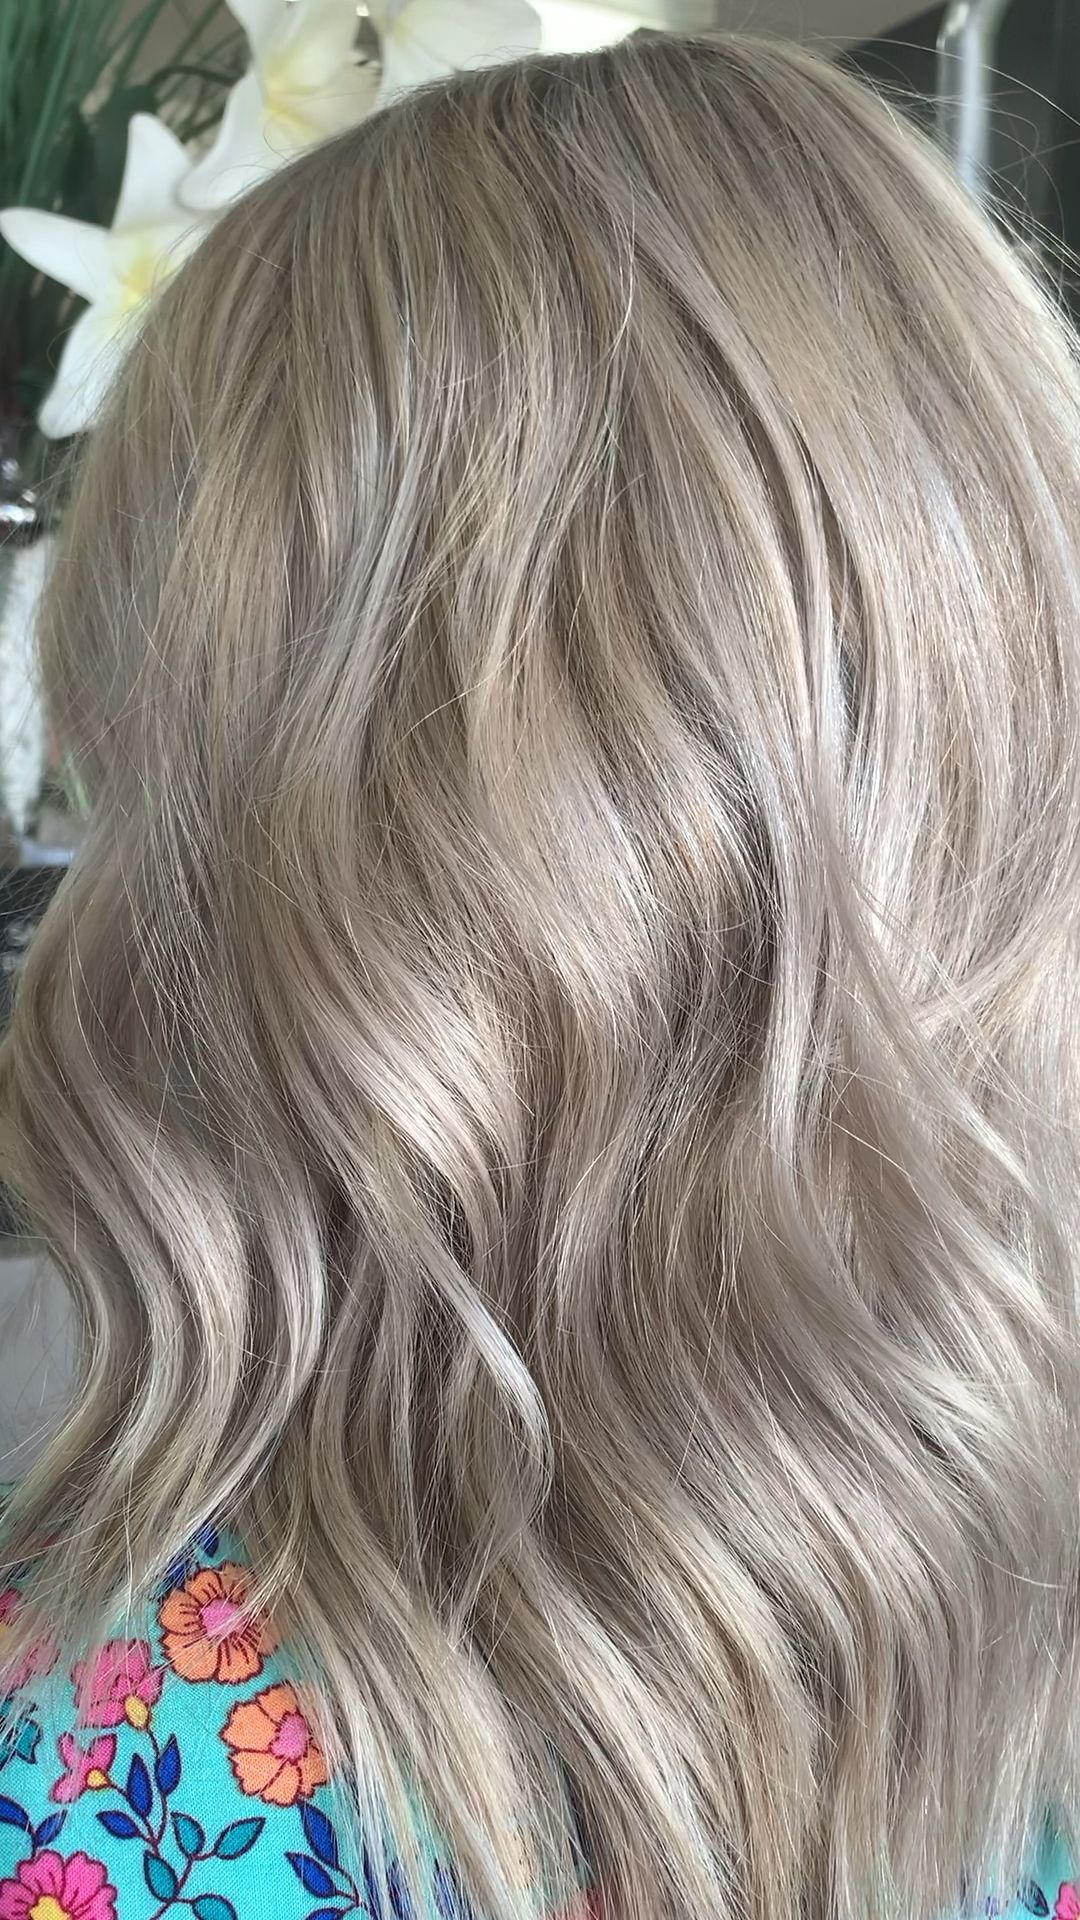 2020 New Gray Hair Wigs For African American Women Crazy Wigs Reducing Grey Hair Brown And Grey Ombre Orange Bob Wig Hatsune Miku Wig